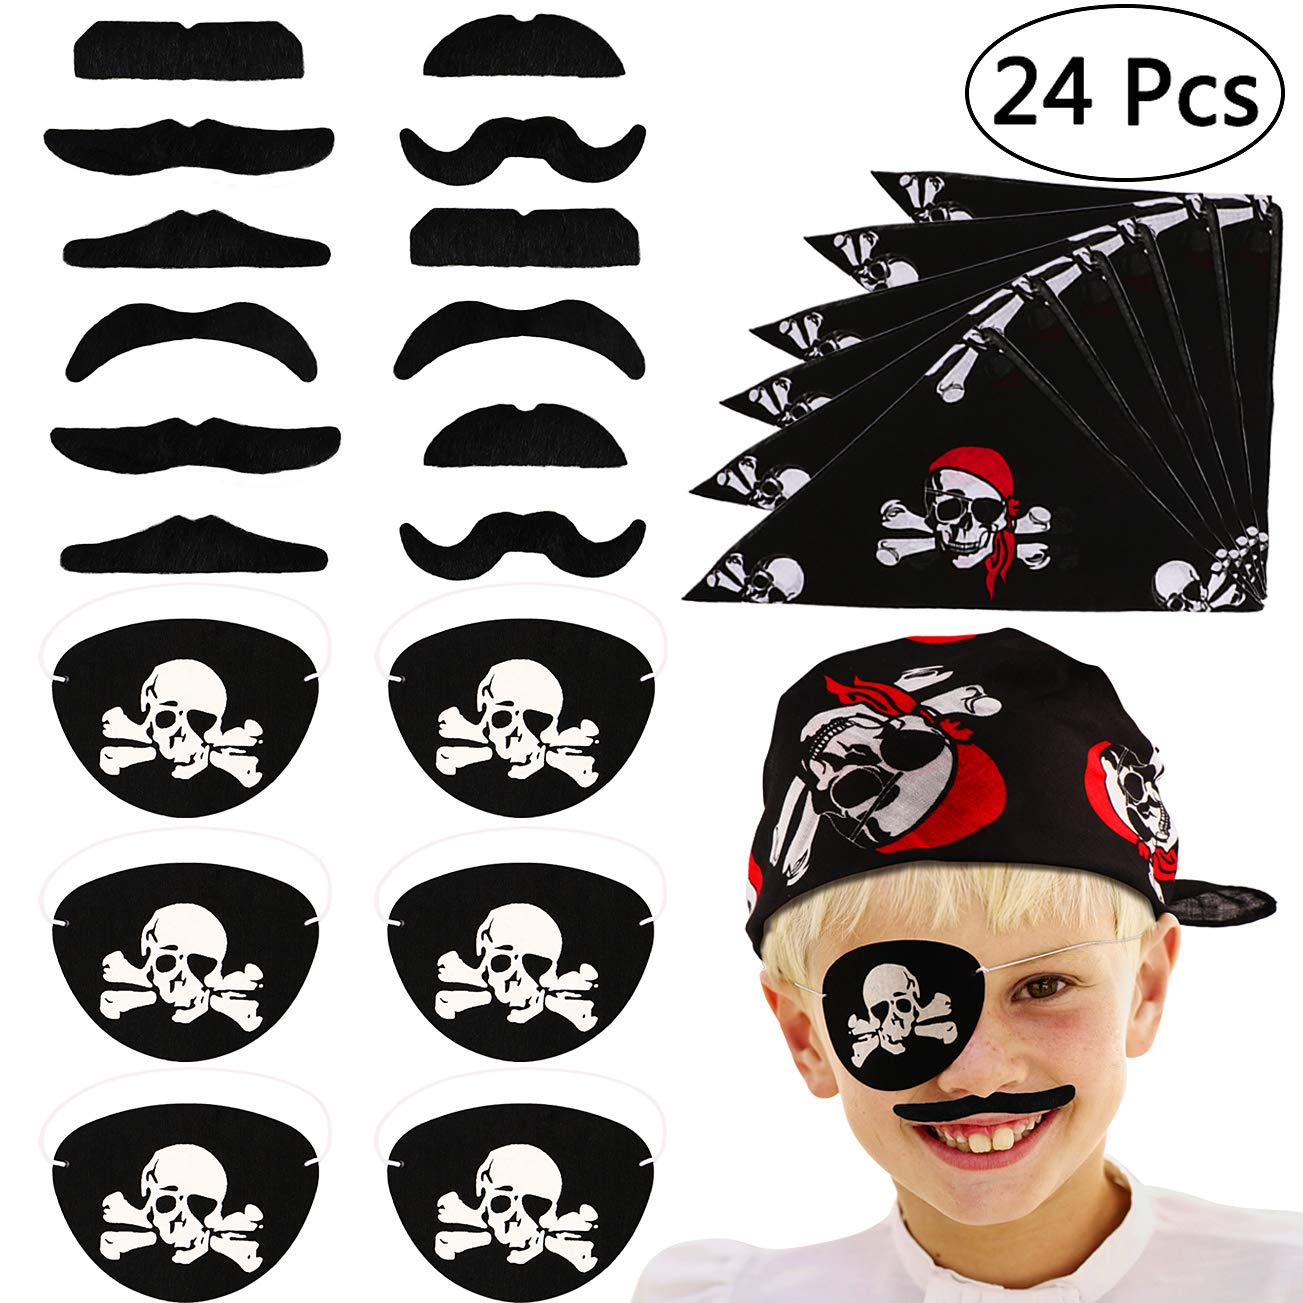 VAMEI 24 PCs Pirate Captain Eye Patches Pirate Bandana and Fake Mustaches for Children Kids Party Favors Costume Prop